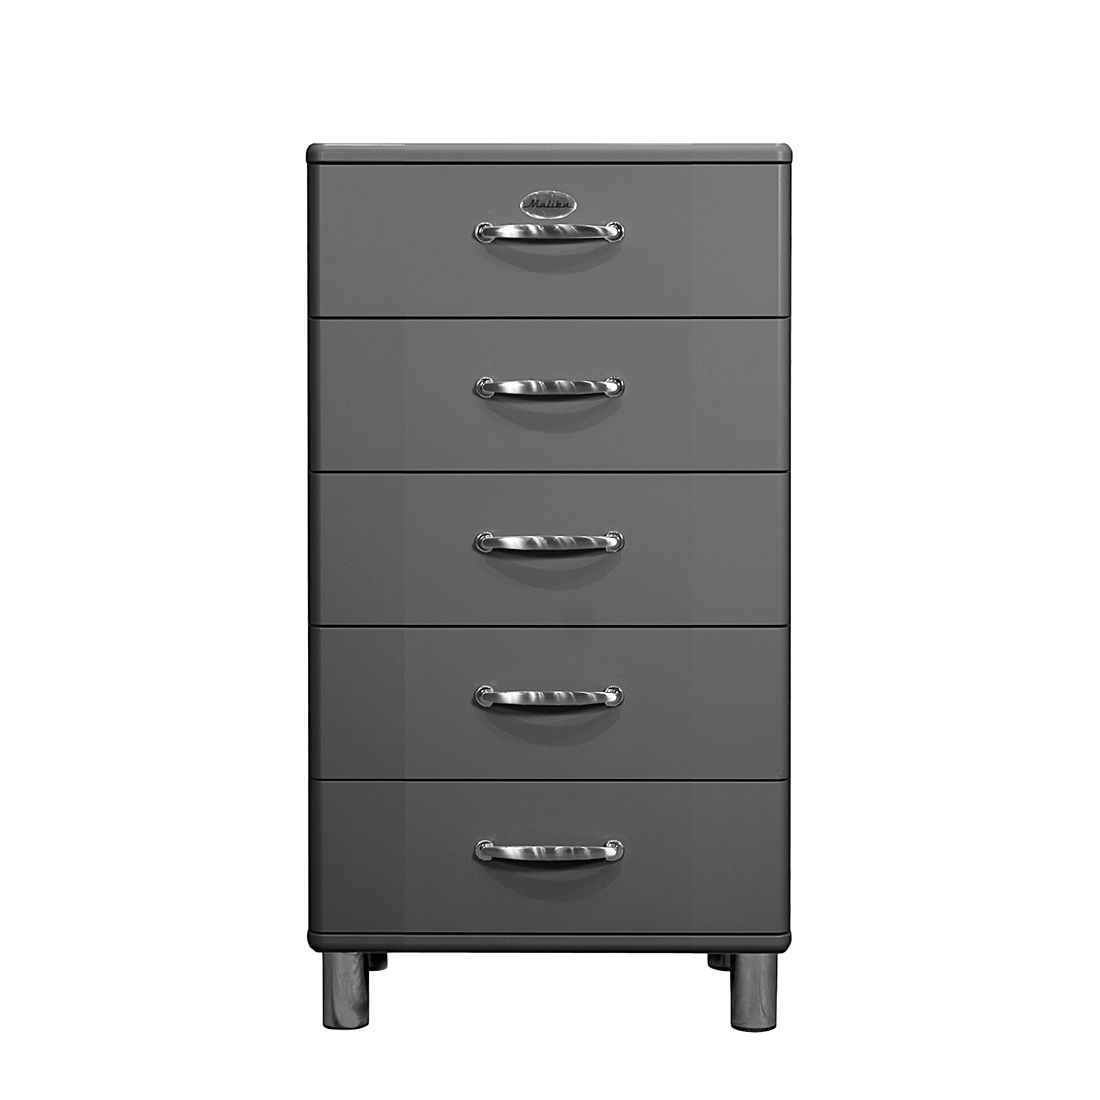 kommode 60 cm breit tenzo preisvergleiche erfahrungsberichte und kauf bei nextag. Black Bedroom Furniture Sets. Home Design Ideas